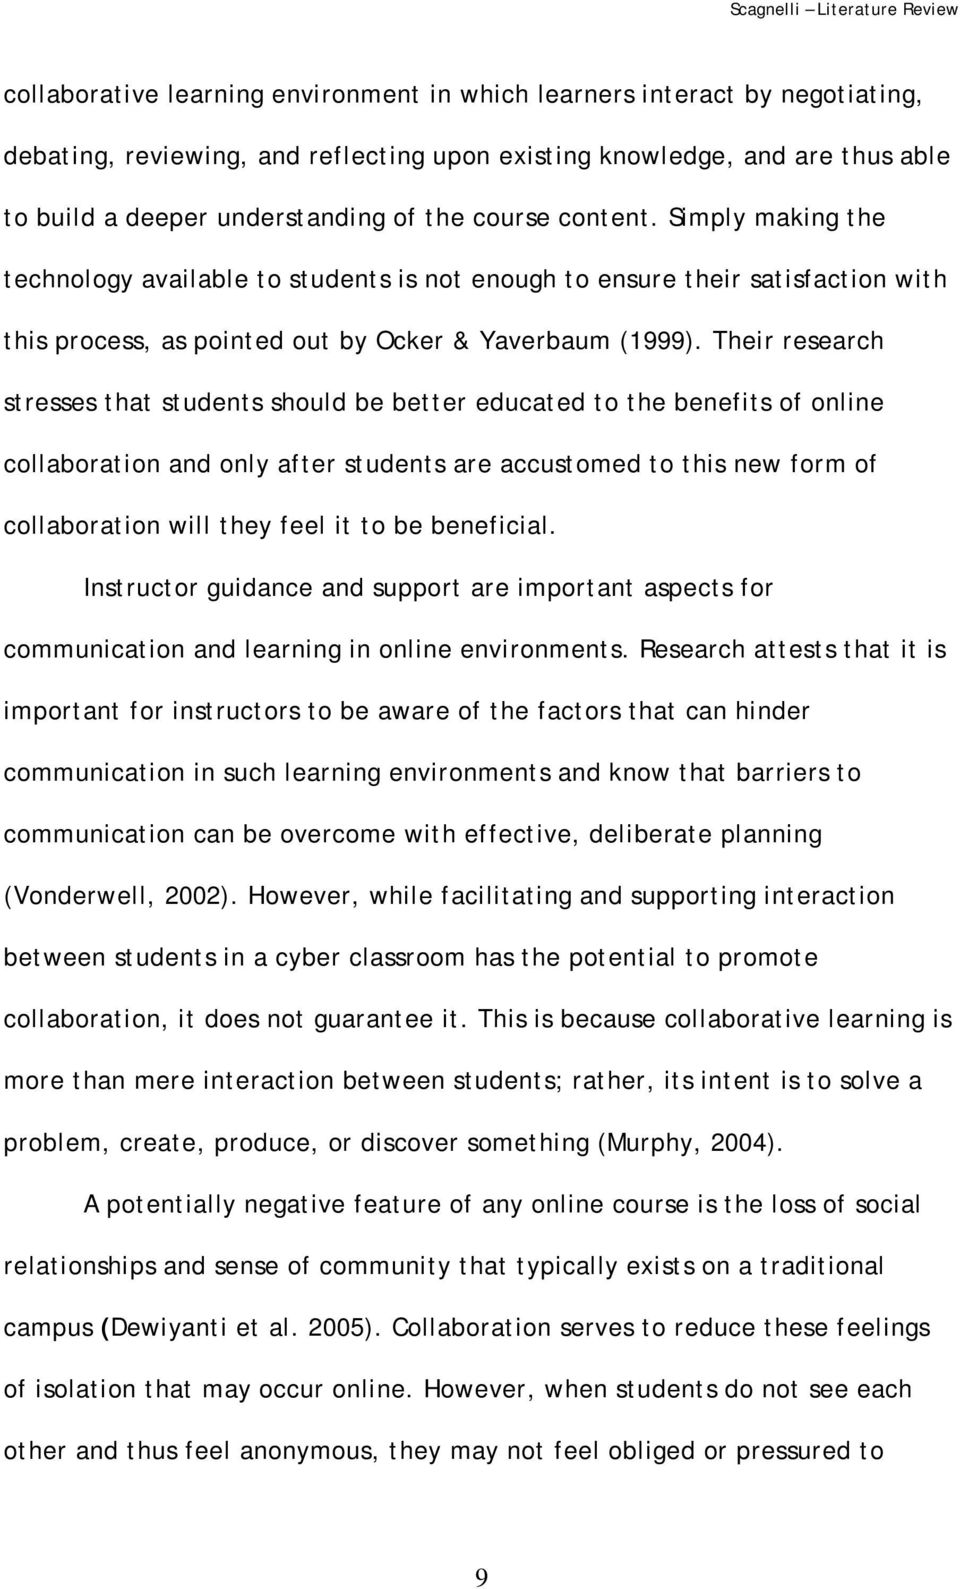 Their research stresses that students should be better educated to the benefits of online collaboration and only after students are accustomed to this new form of collaboration will they feel it to